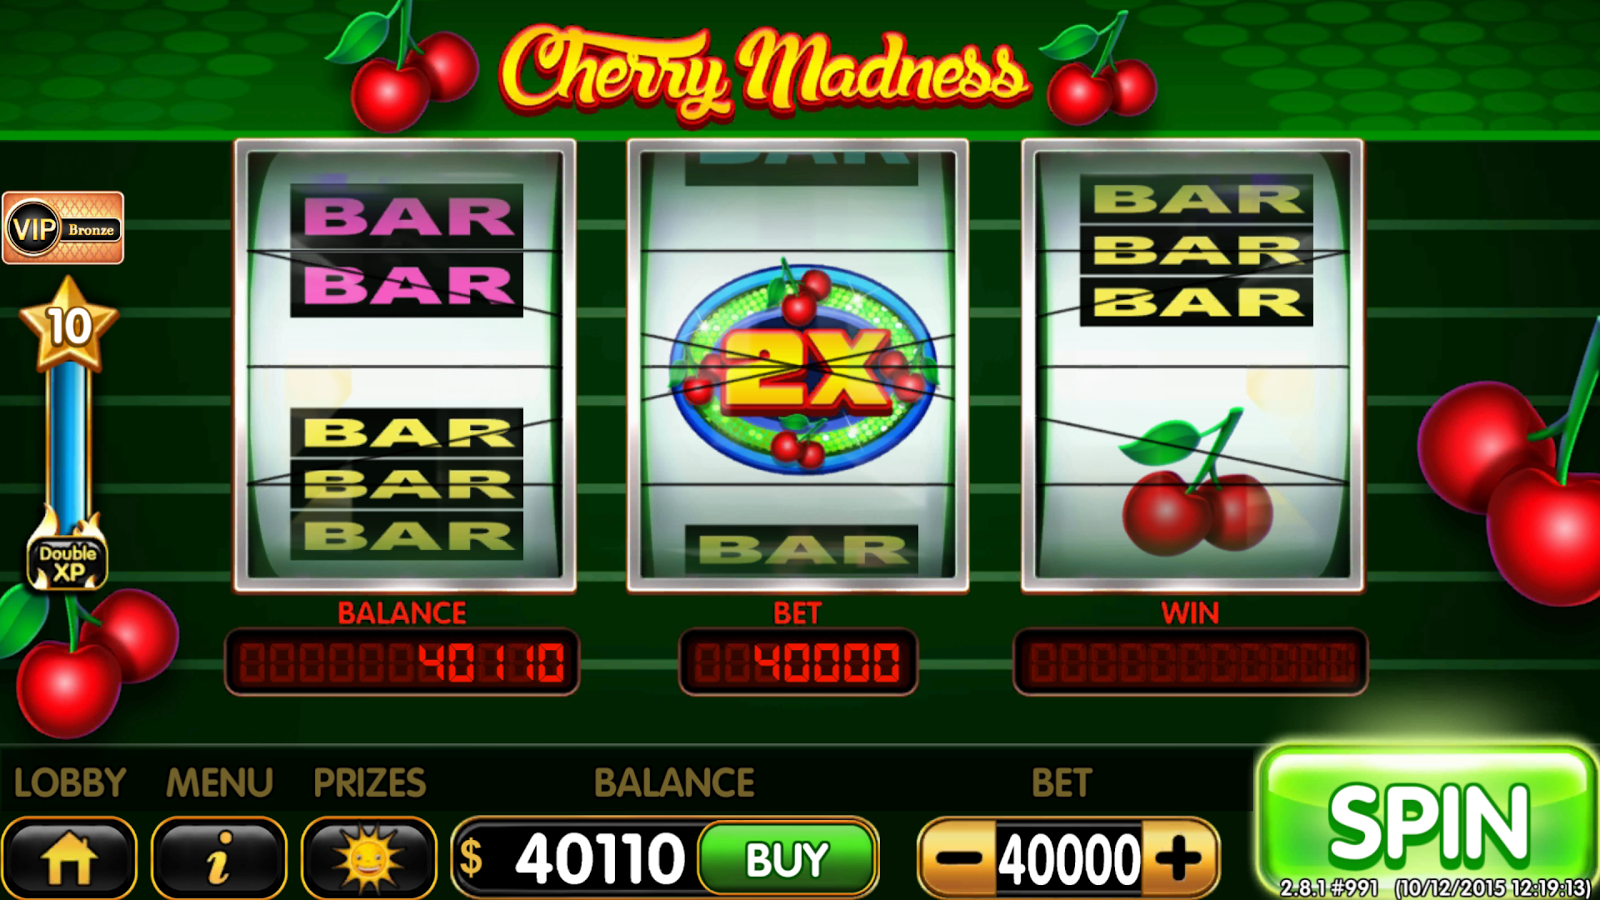 Lover Machine Slot Machine - Free to Play Online Casino Game